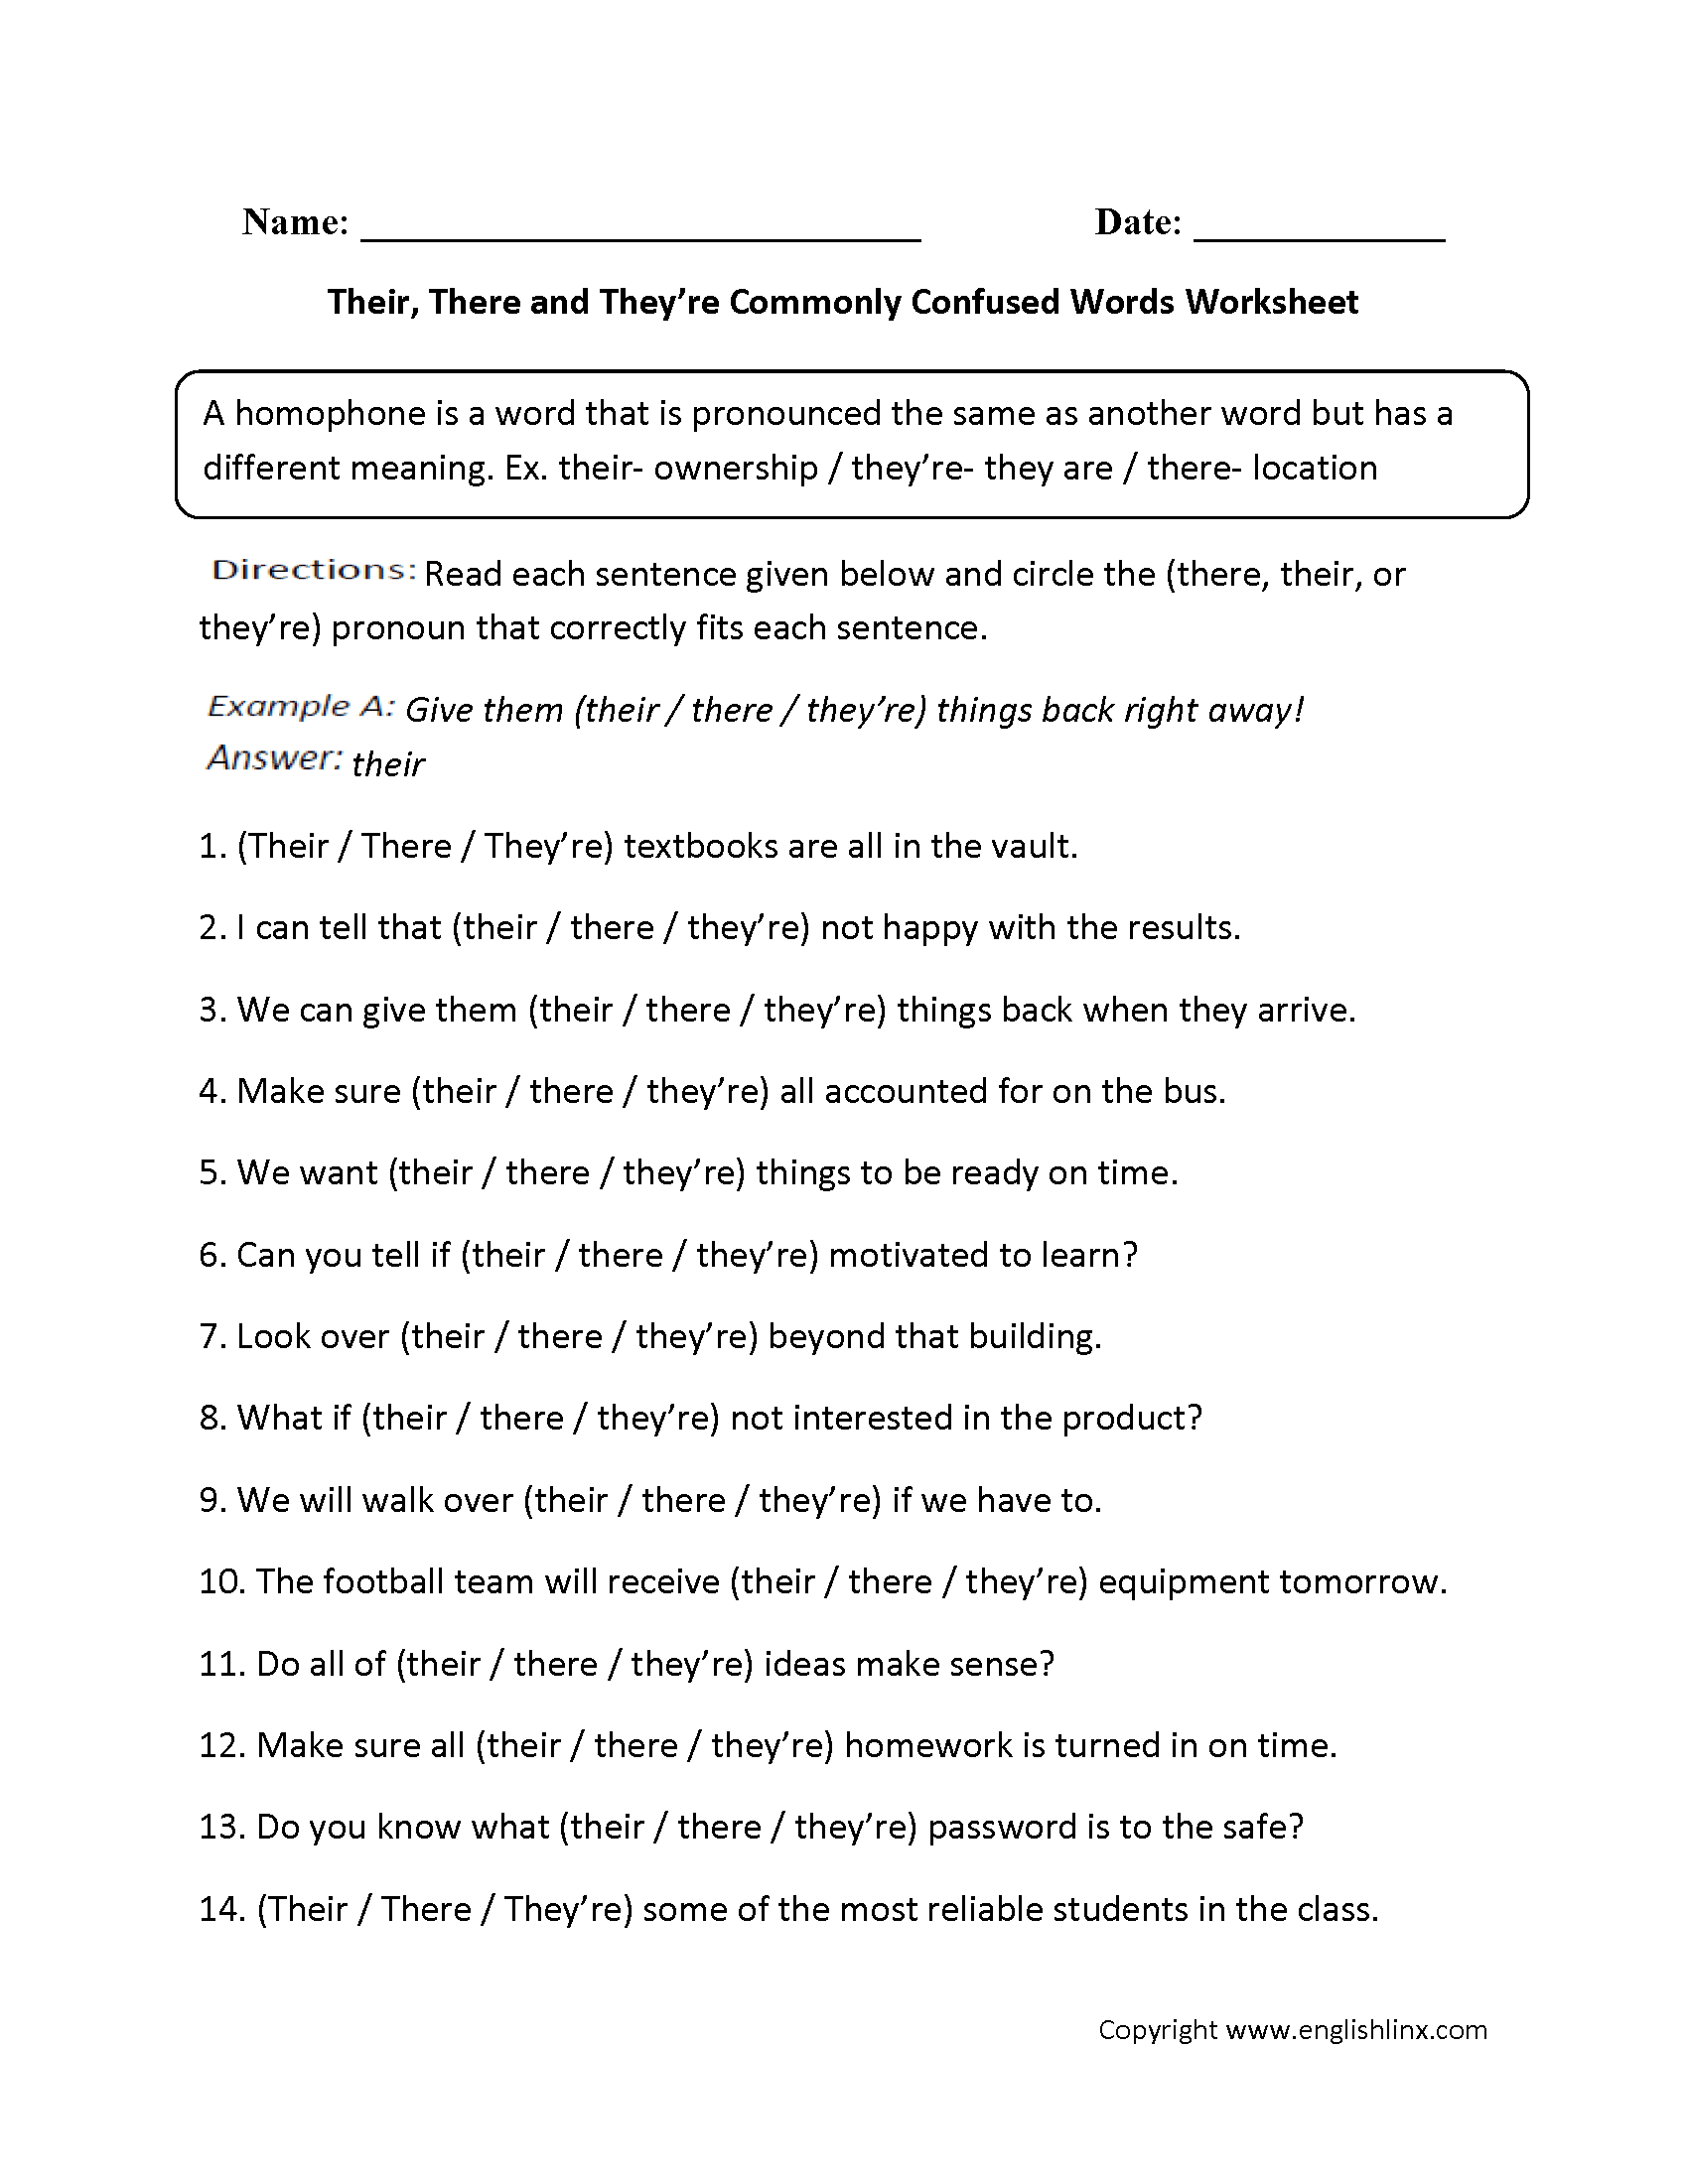 Commonly Confused Words Worksheets – There Their and They Re Worksheet